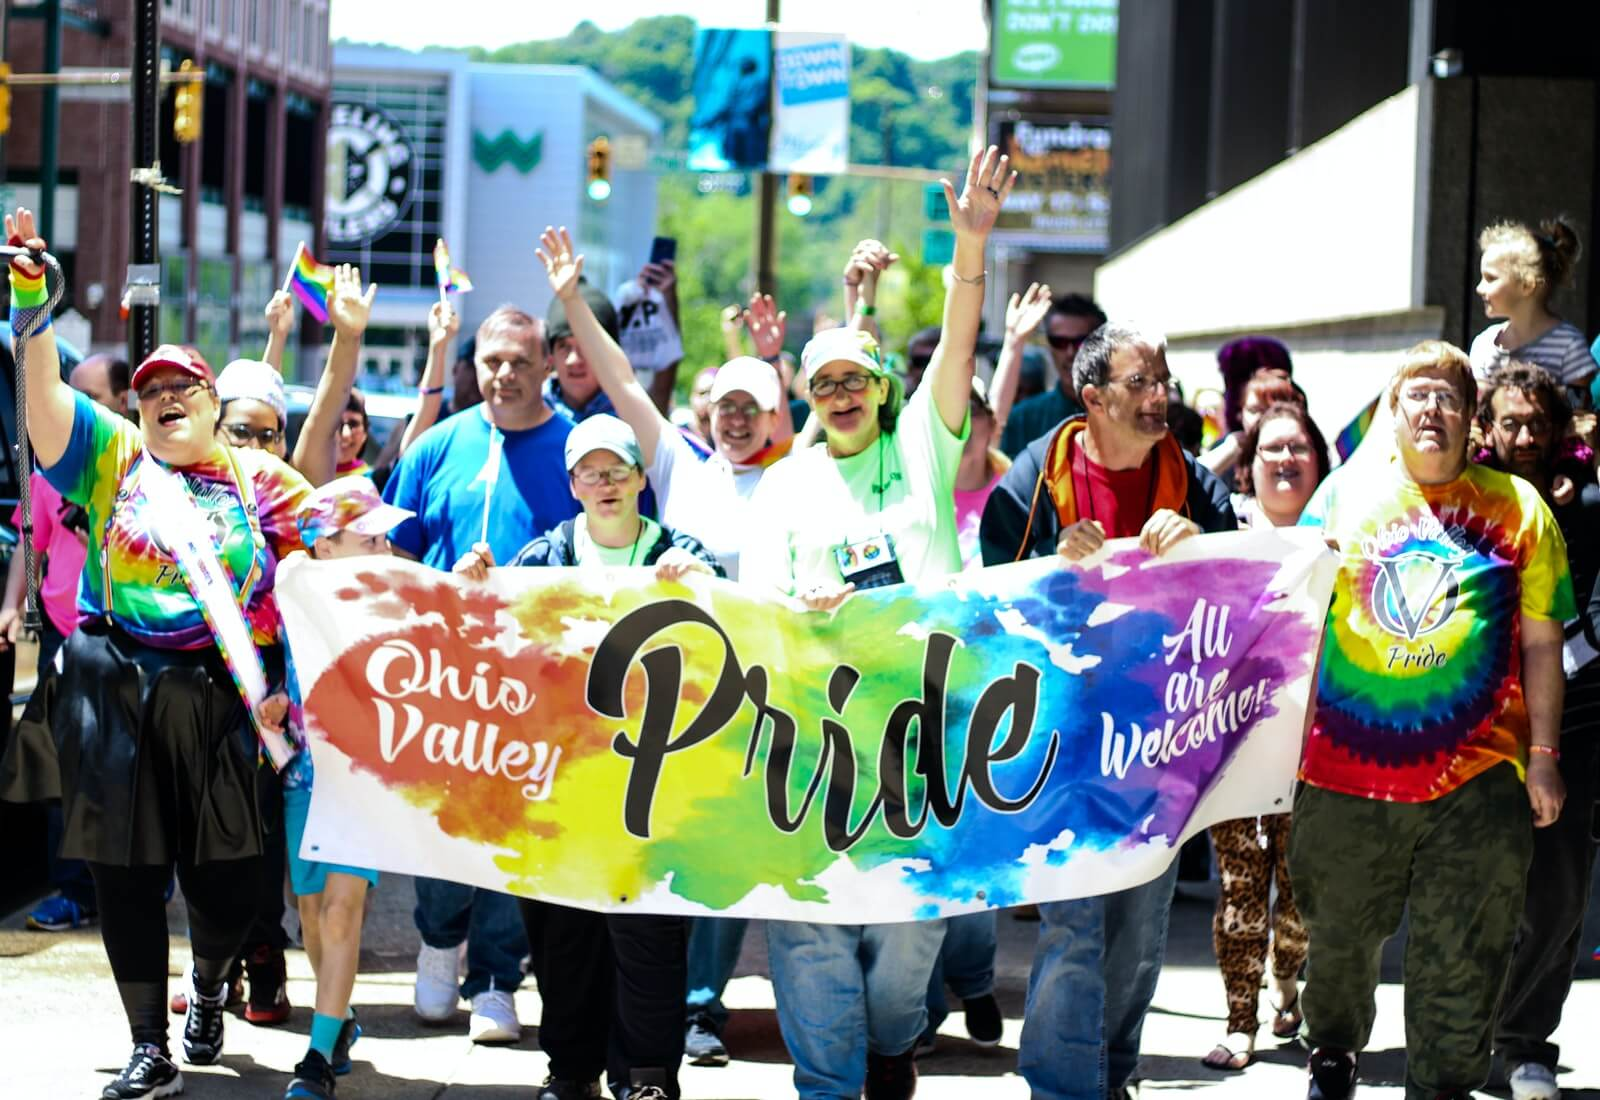 people march for ohio valley lgbtq pride month